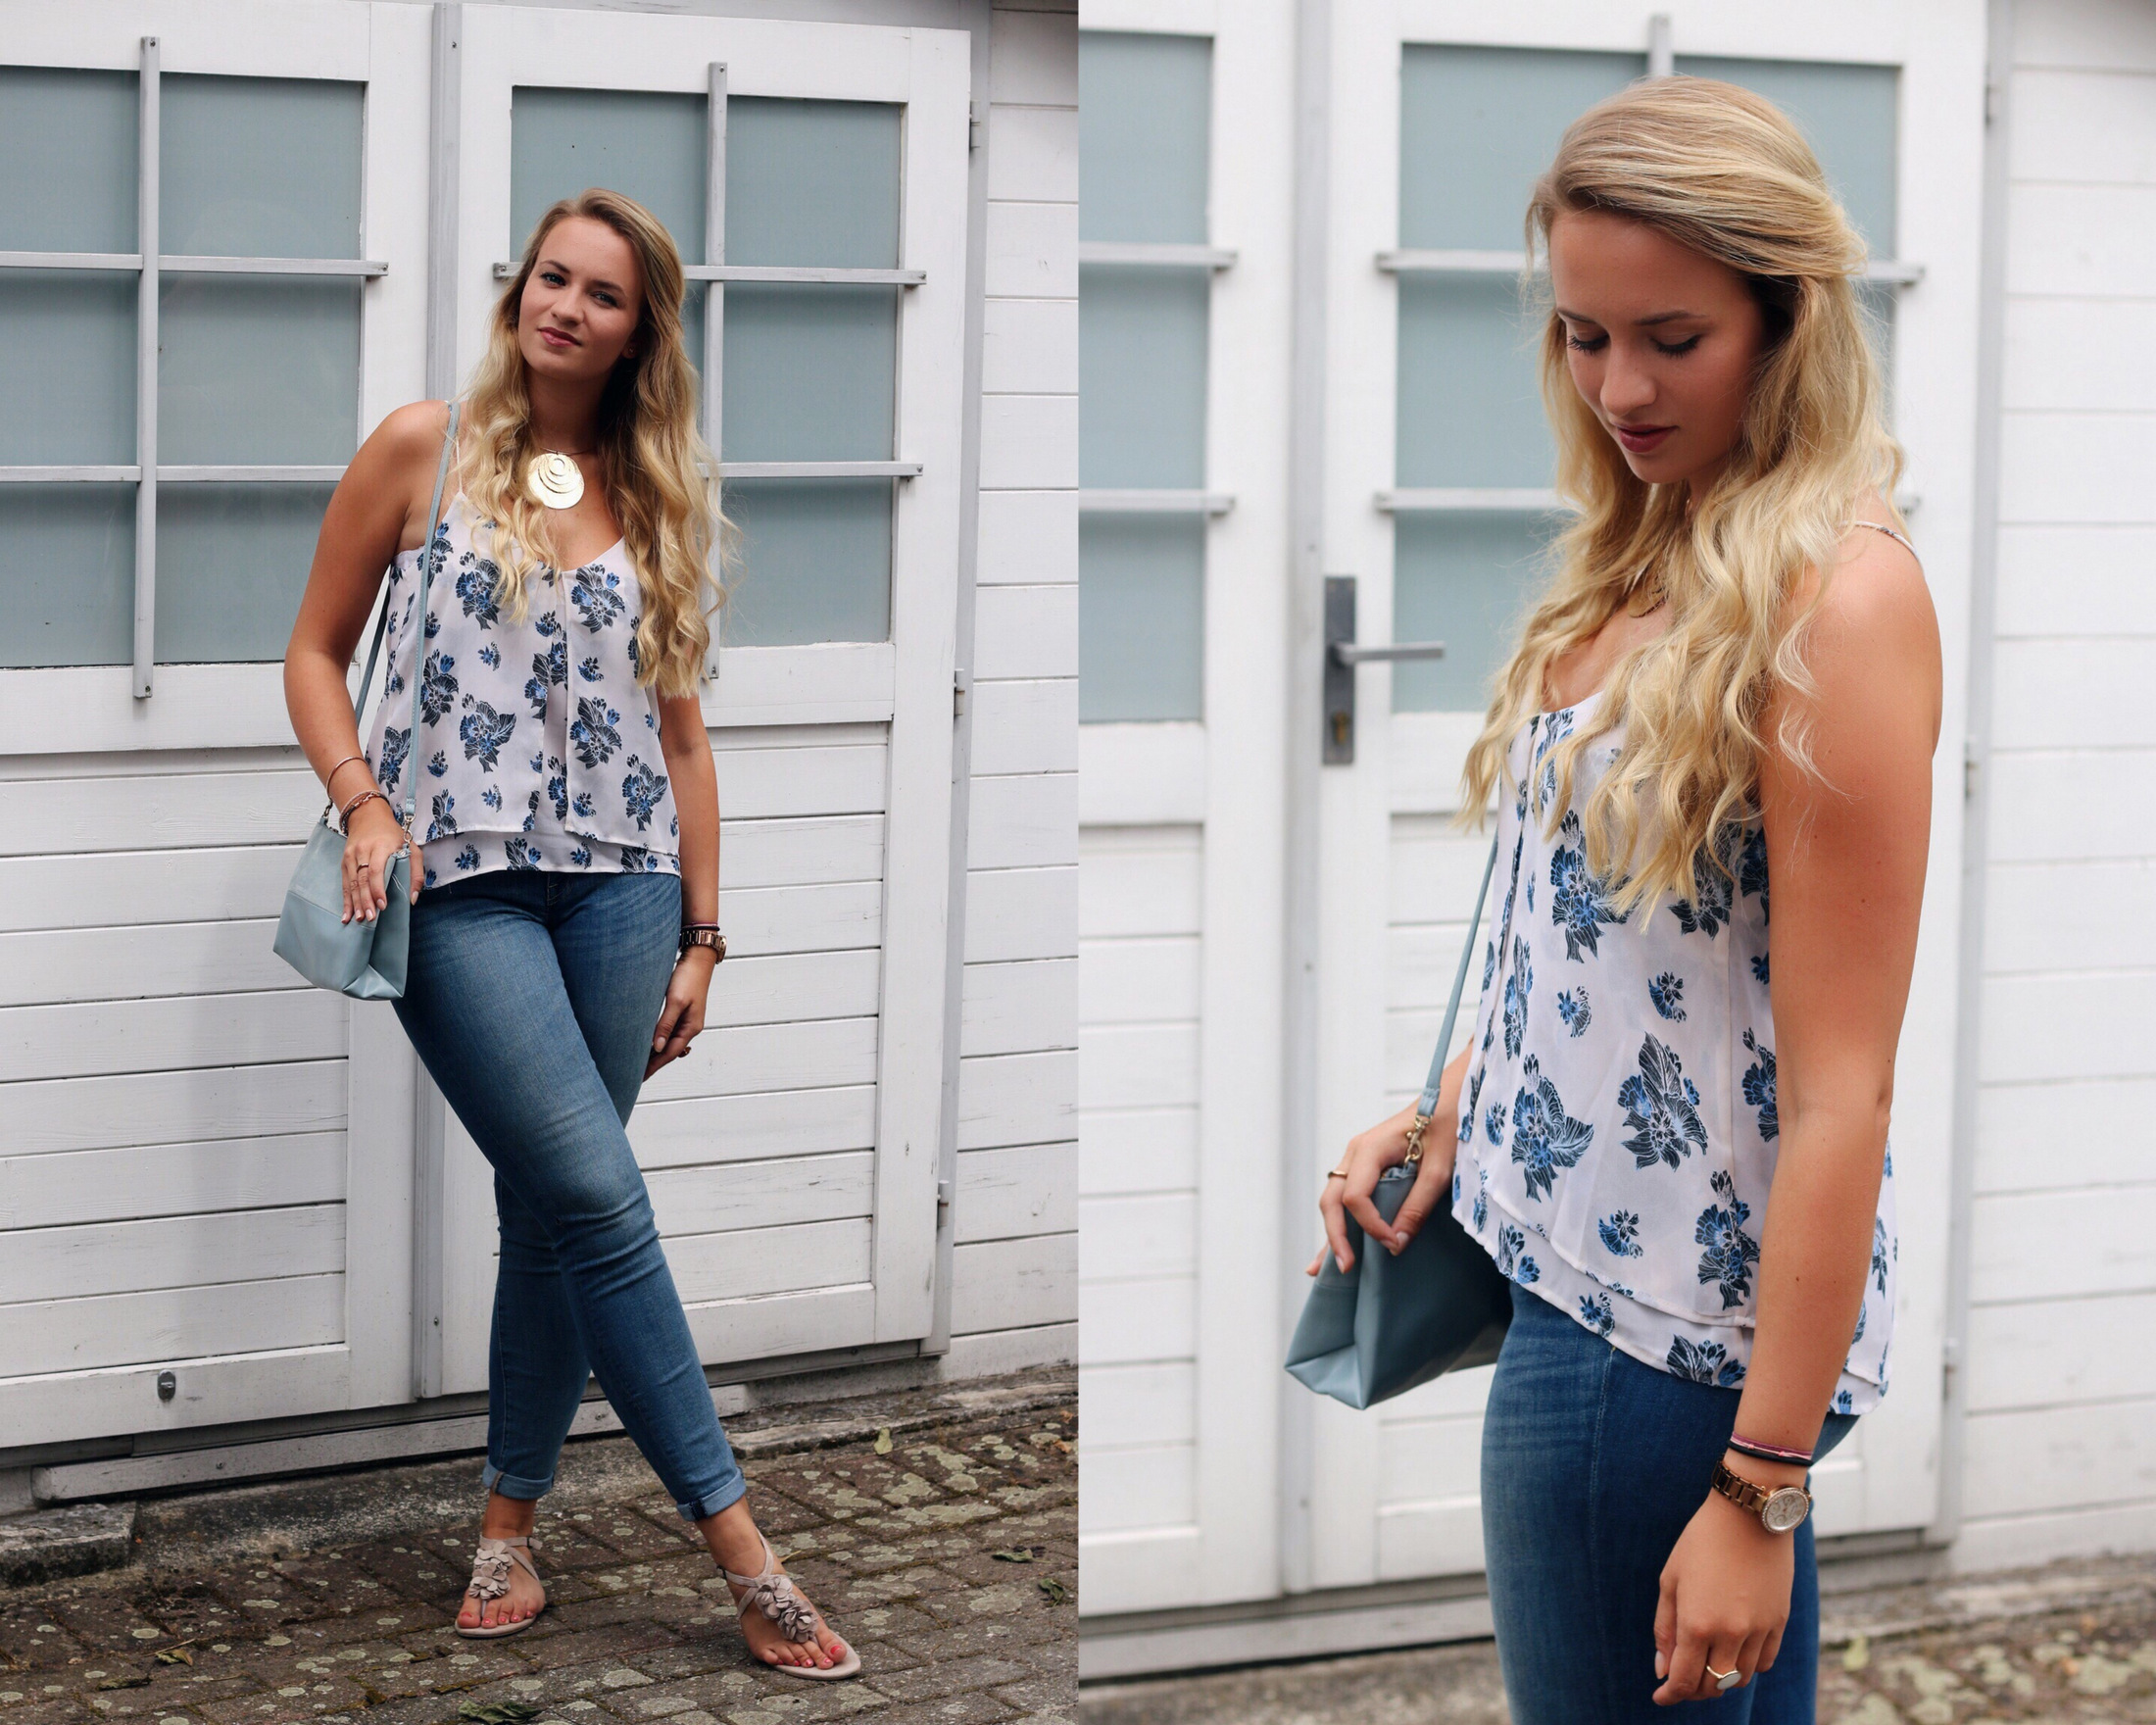 Ocasual-jeans-look-shades-blue-outfit-ootd-mrs-brightside-rosavivi-blogger